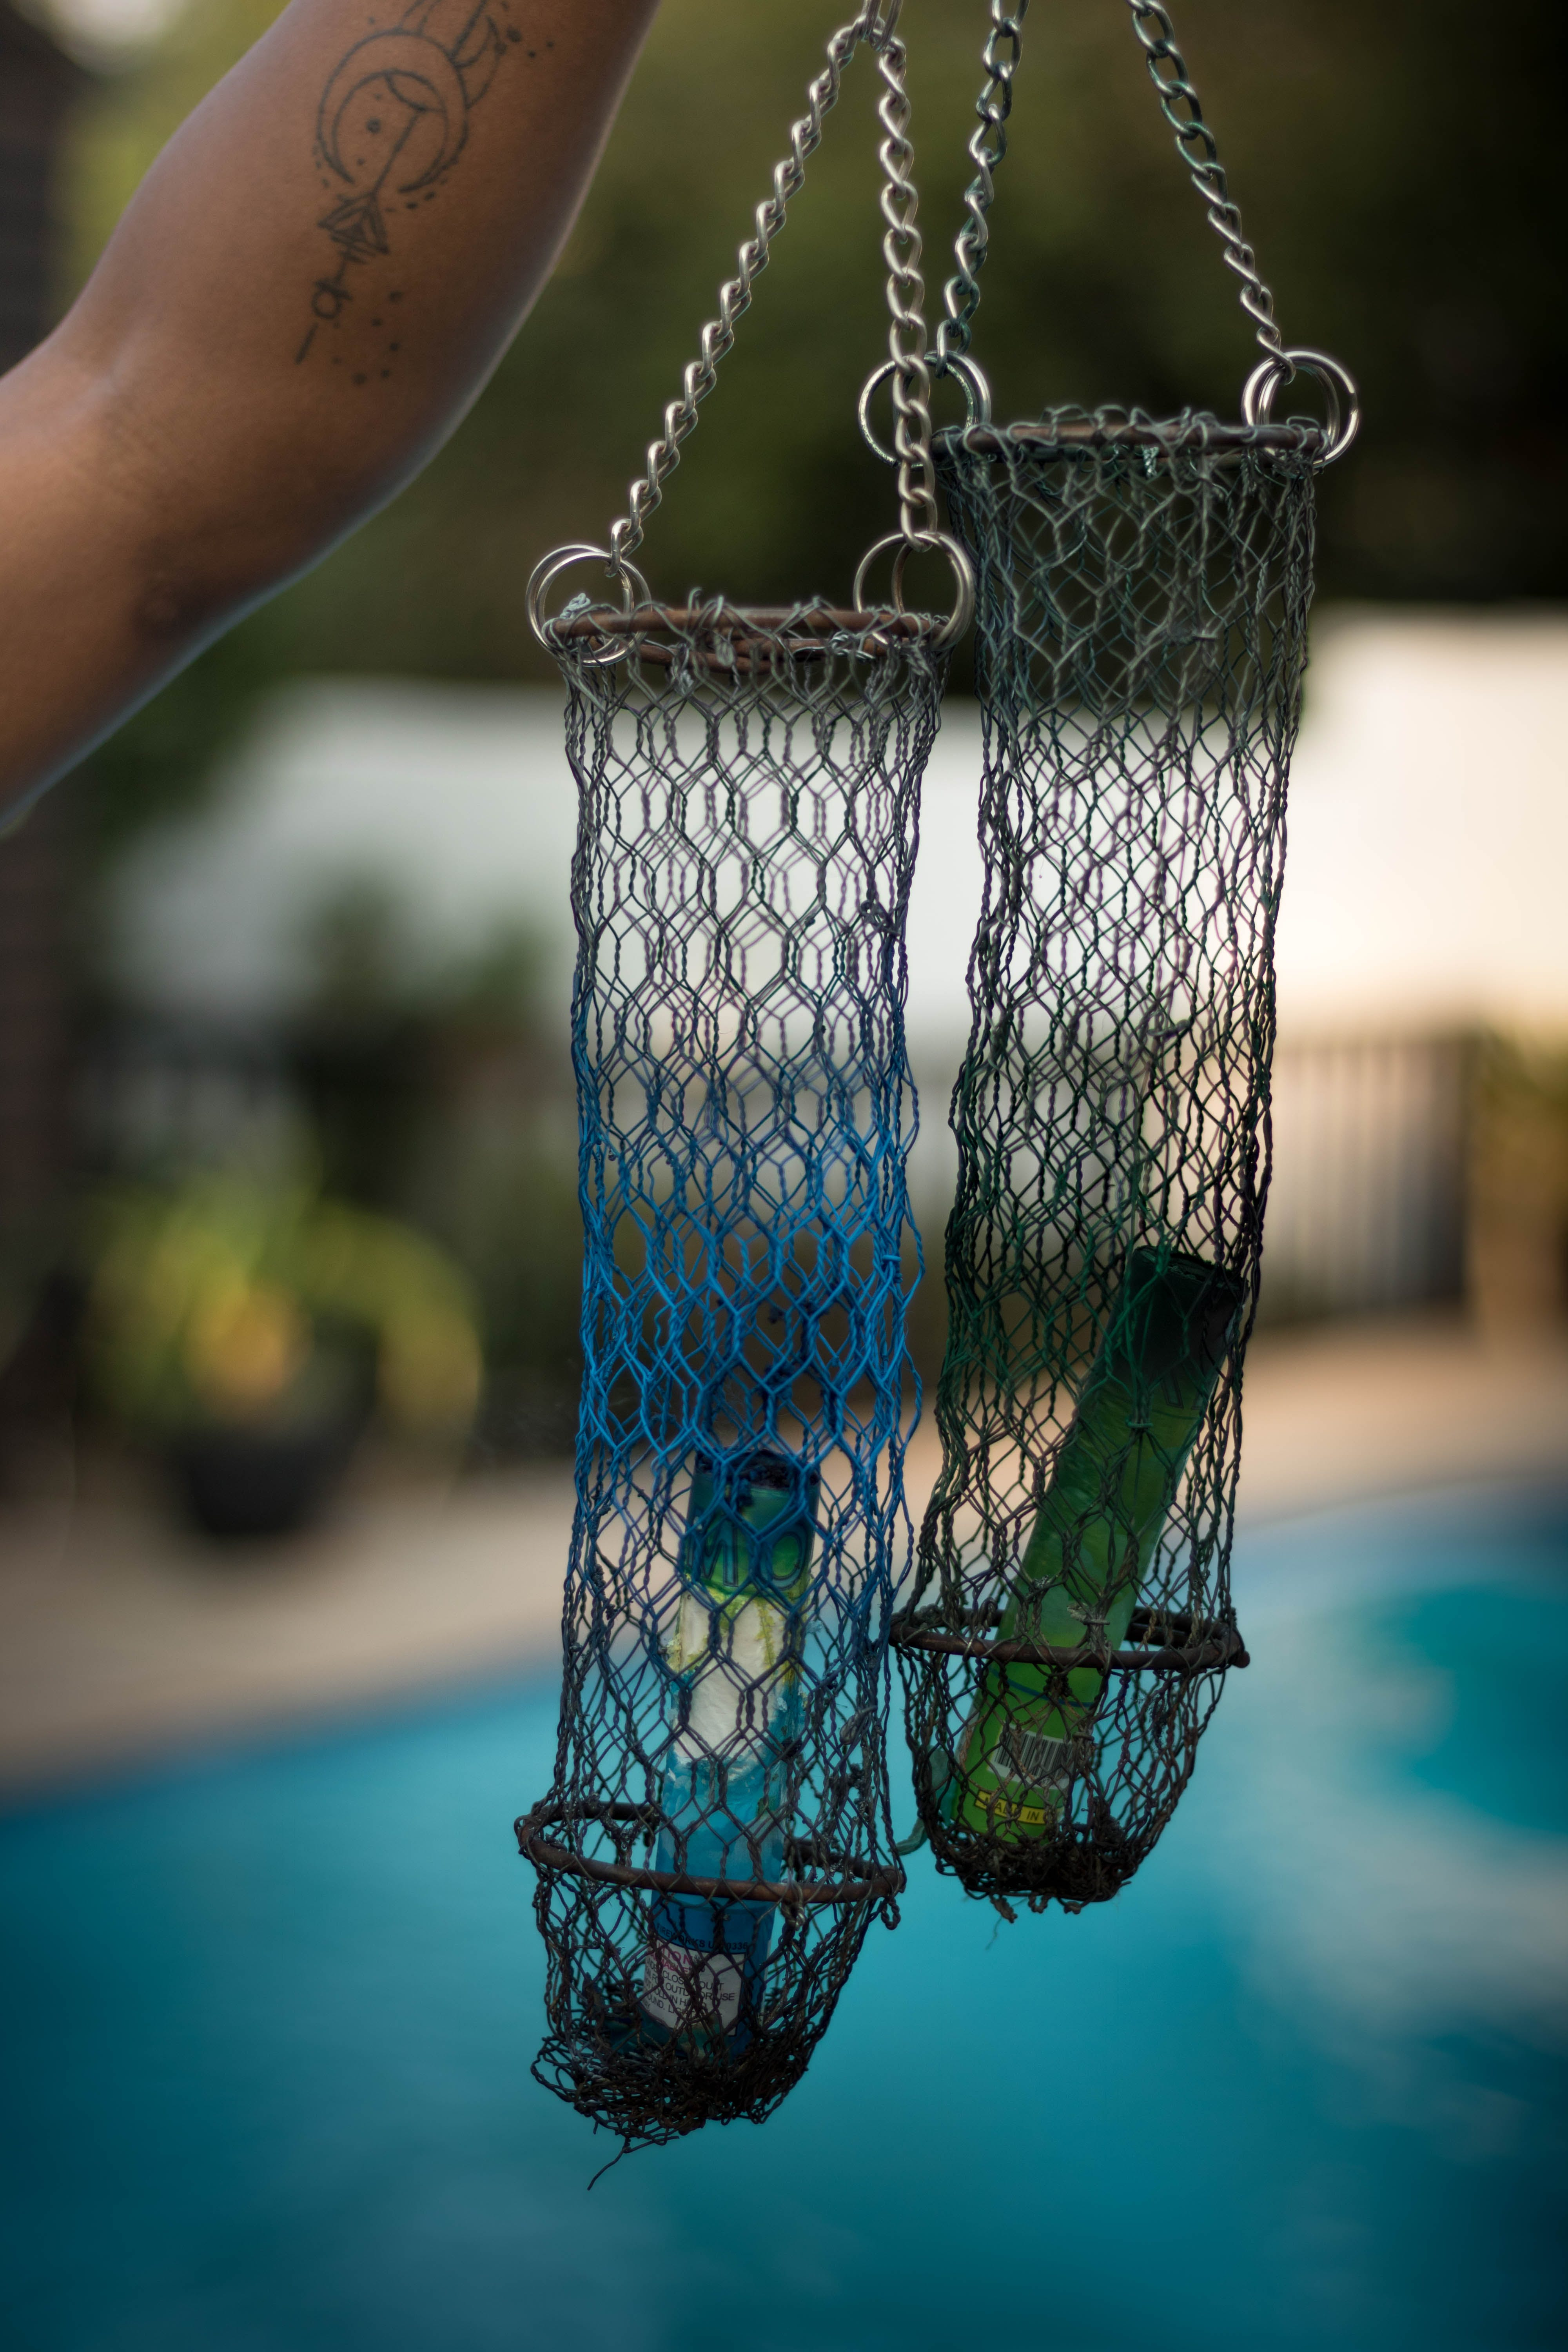 Person Holding Chain of Net Hanging Decors